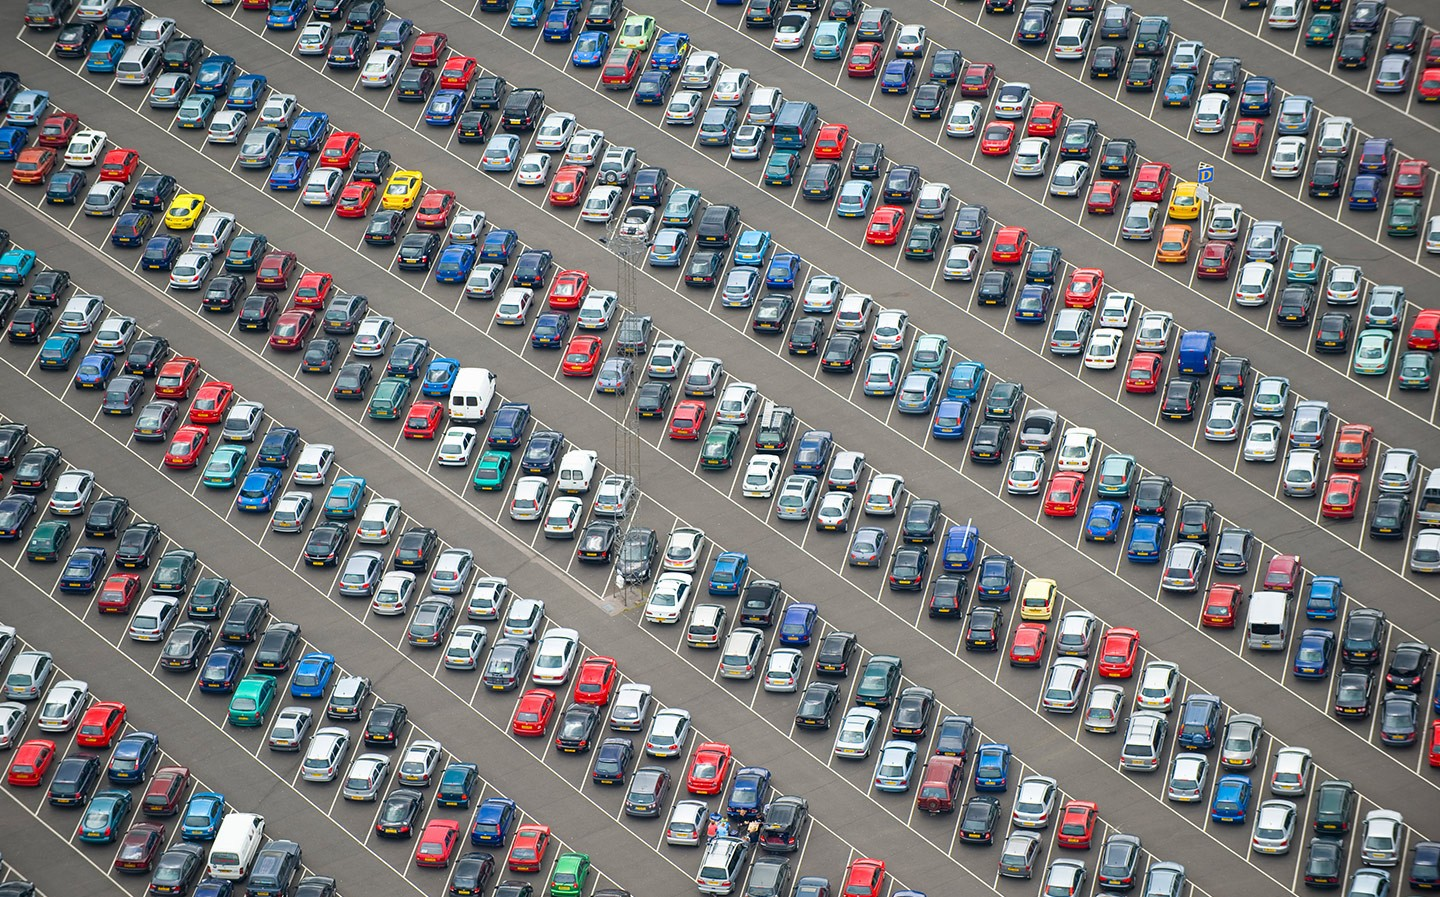 New Car Registrations Down 22% Year on Year in September